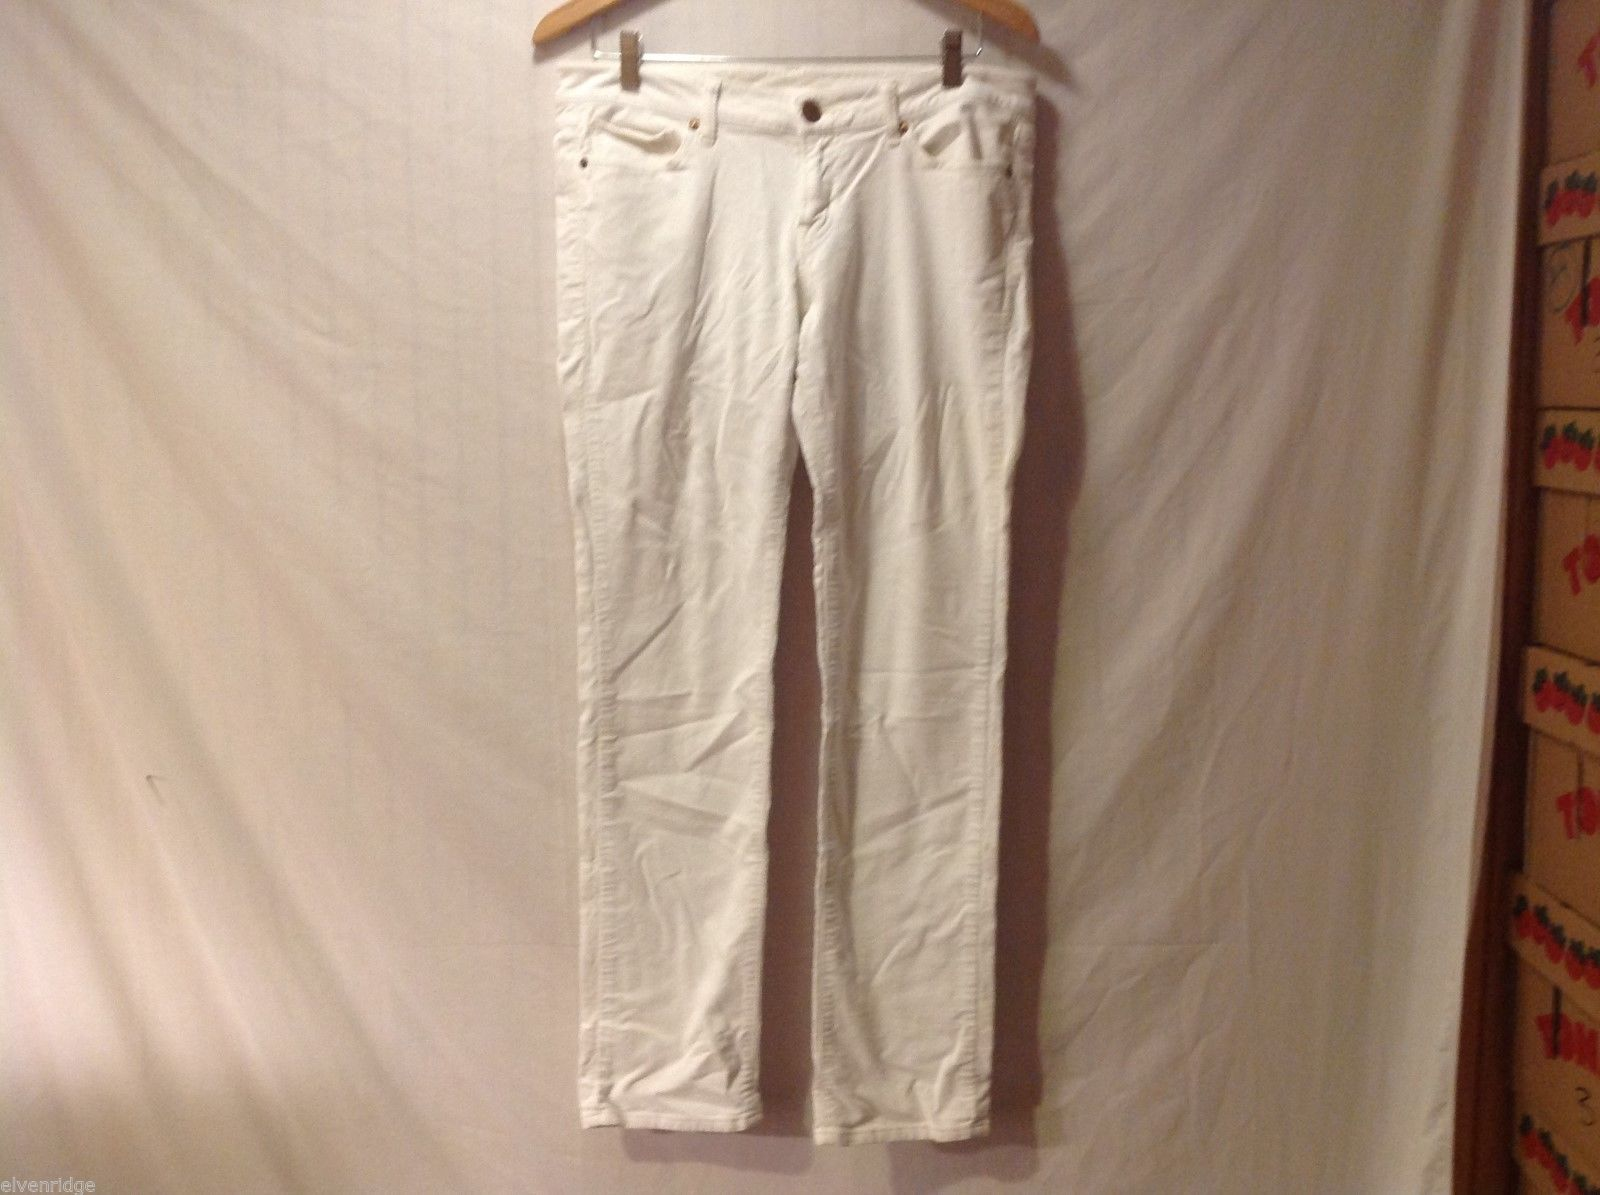 Uniqlo Womens White Courduroy Pants, Size 10